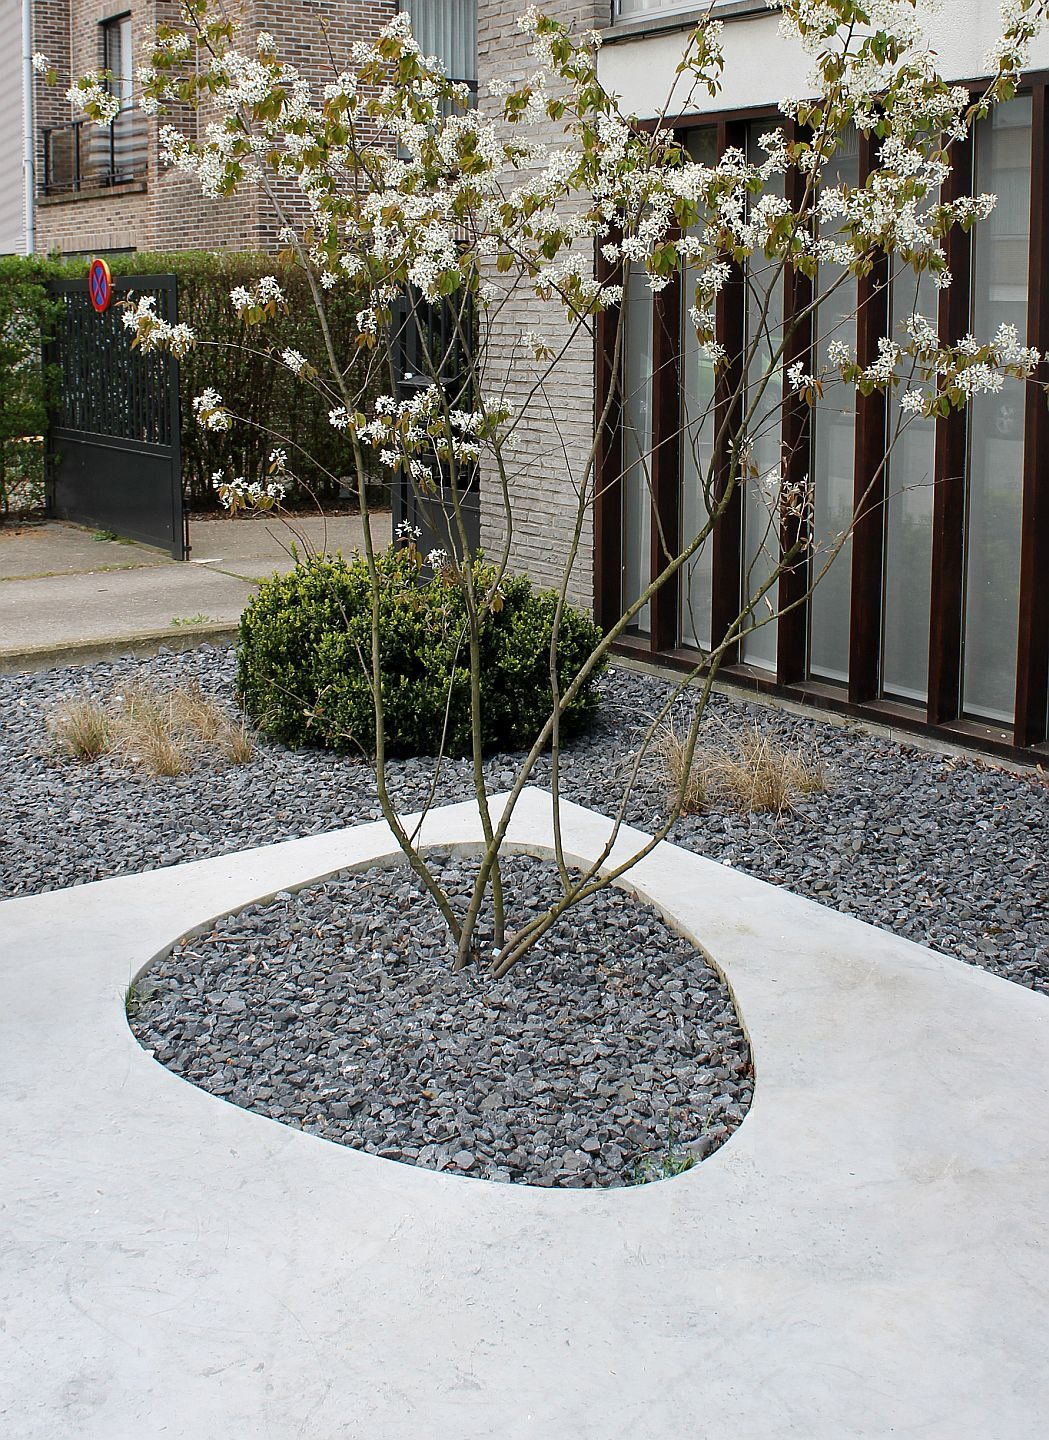 concrete and gravel pattern gravel garden to surround deck tiki area modern and easy to do. Black Bedroom Furniture Sets. Home Design Ideas